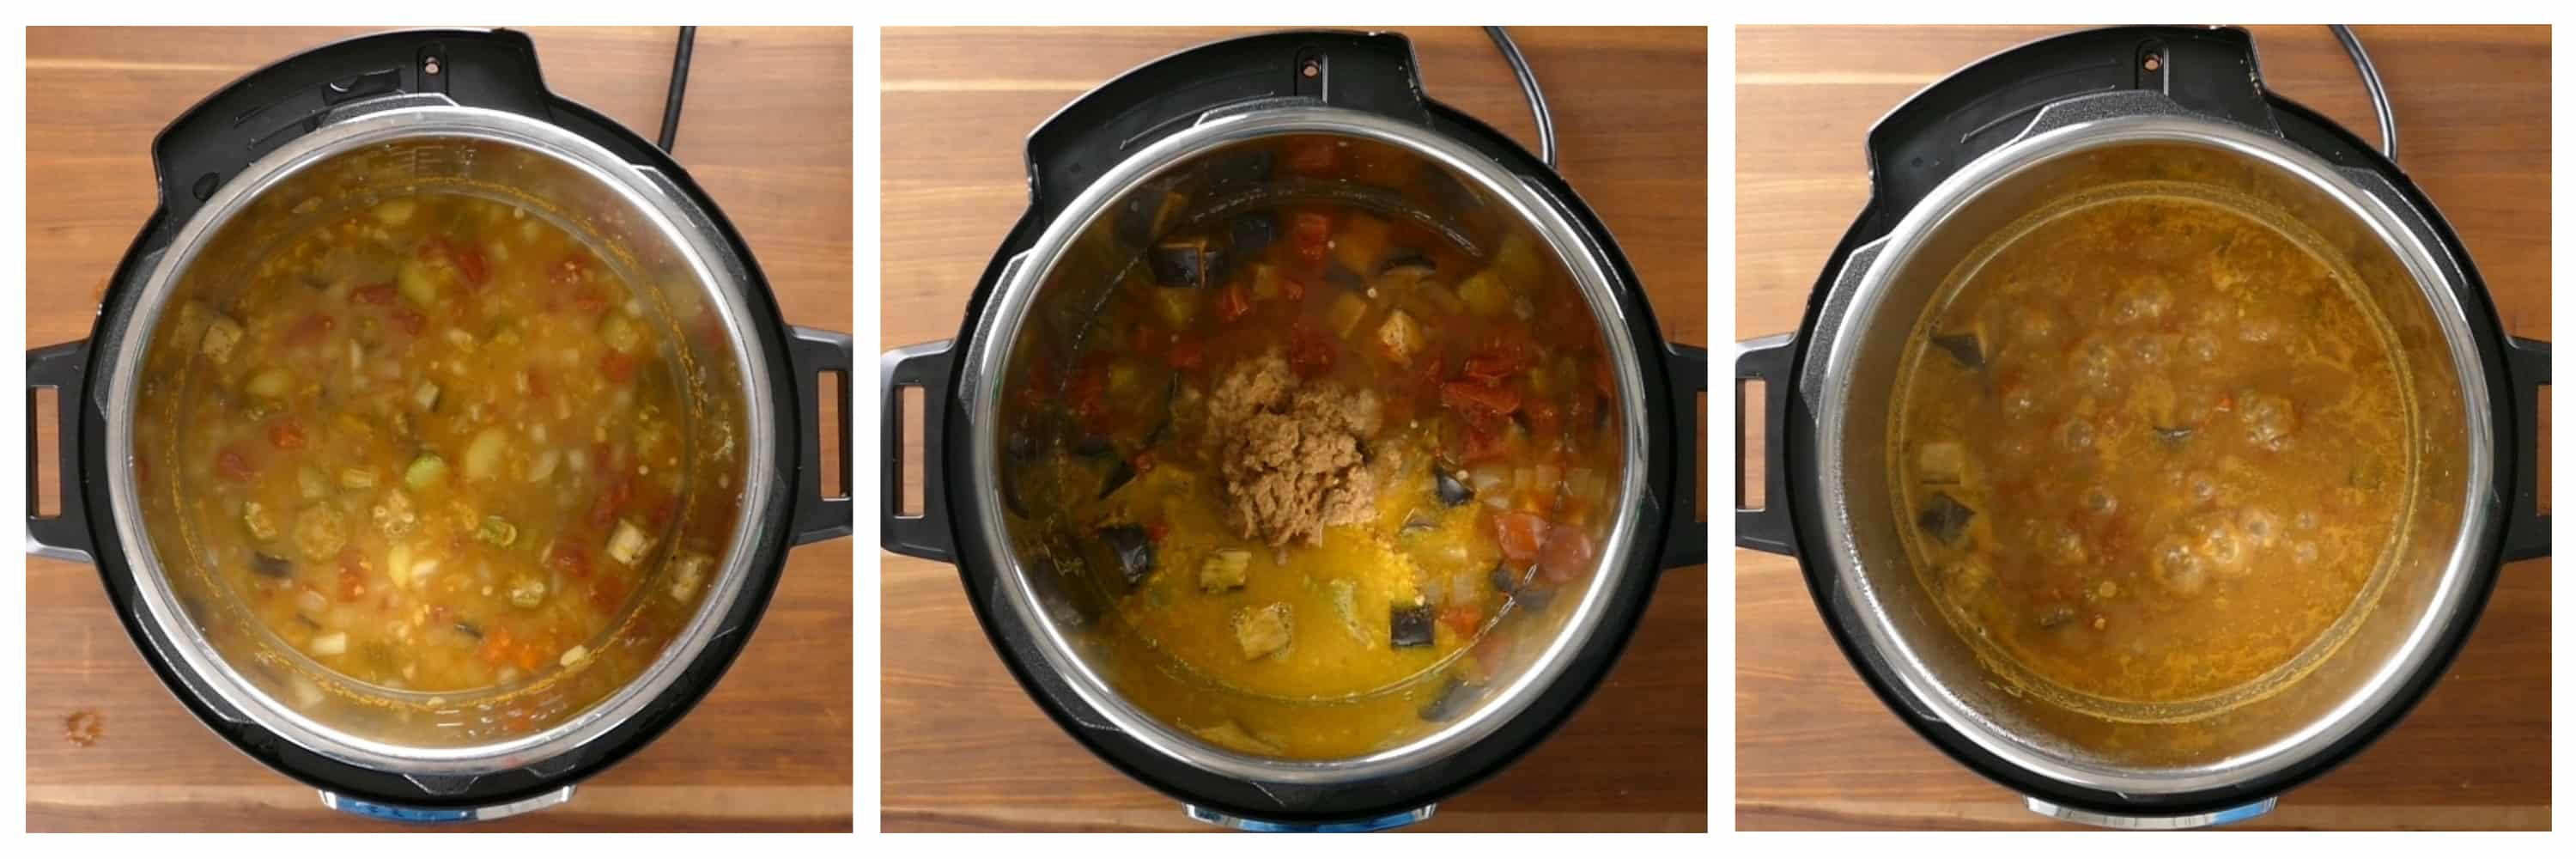 Instant Pot Sambar Instructions 5 collage - cooked sambar, added coconut mixture, boil - Paint the Kitchen Red